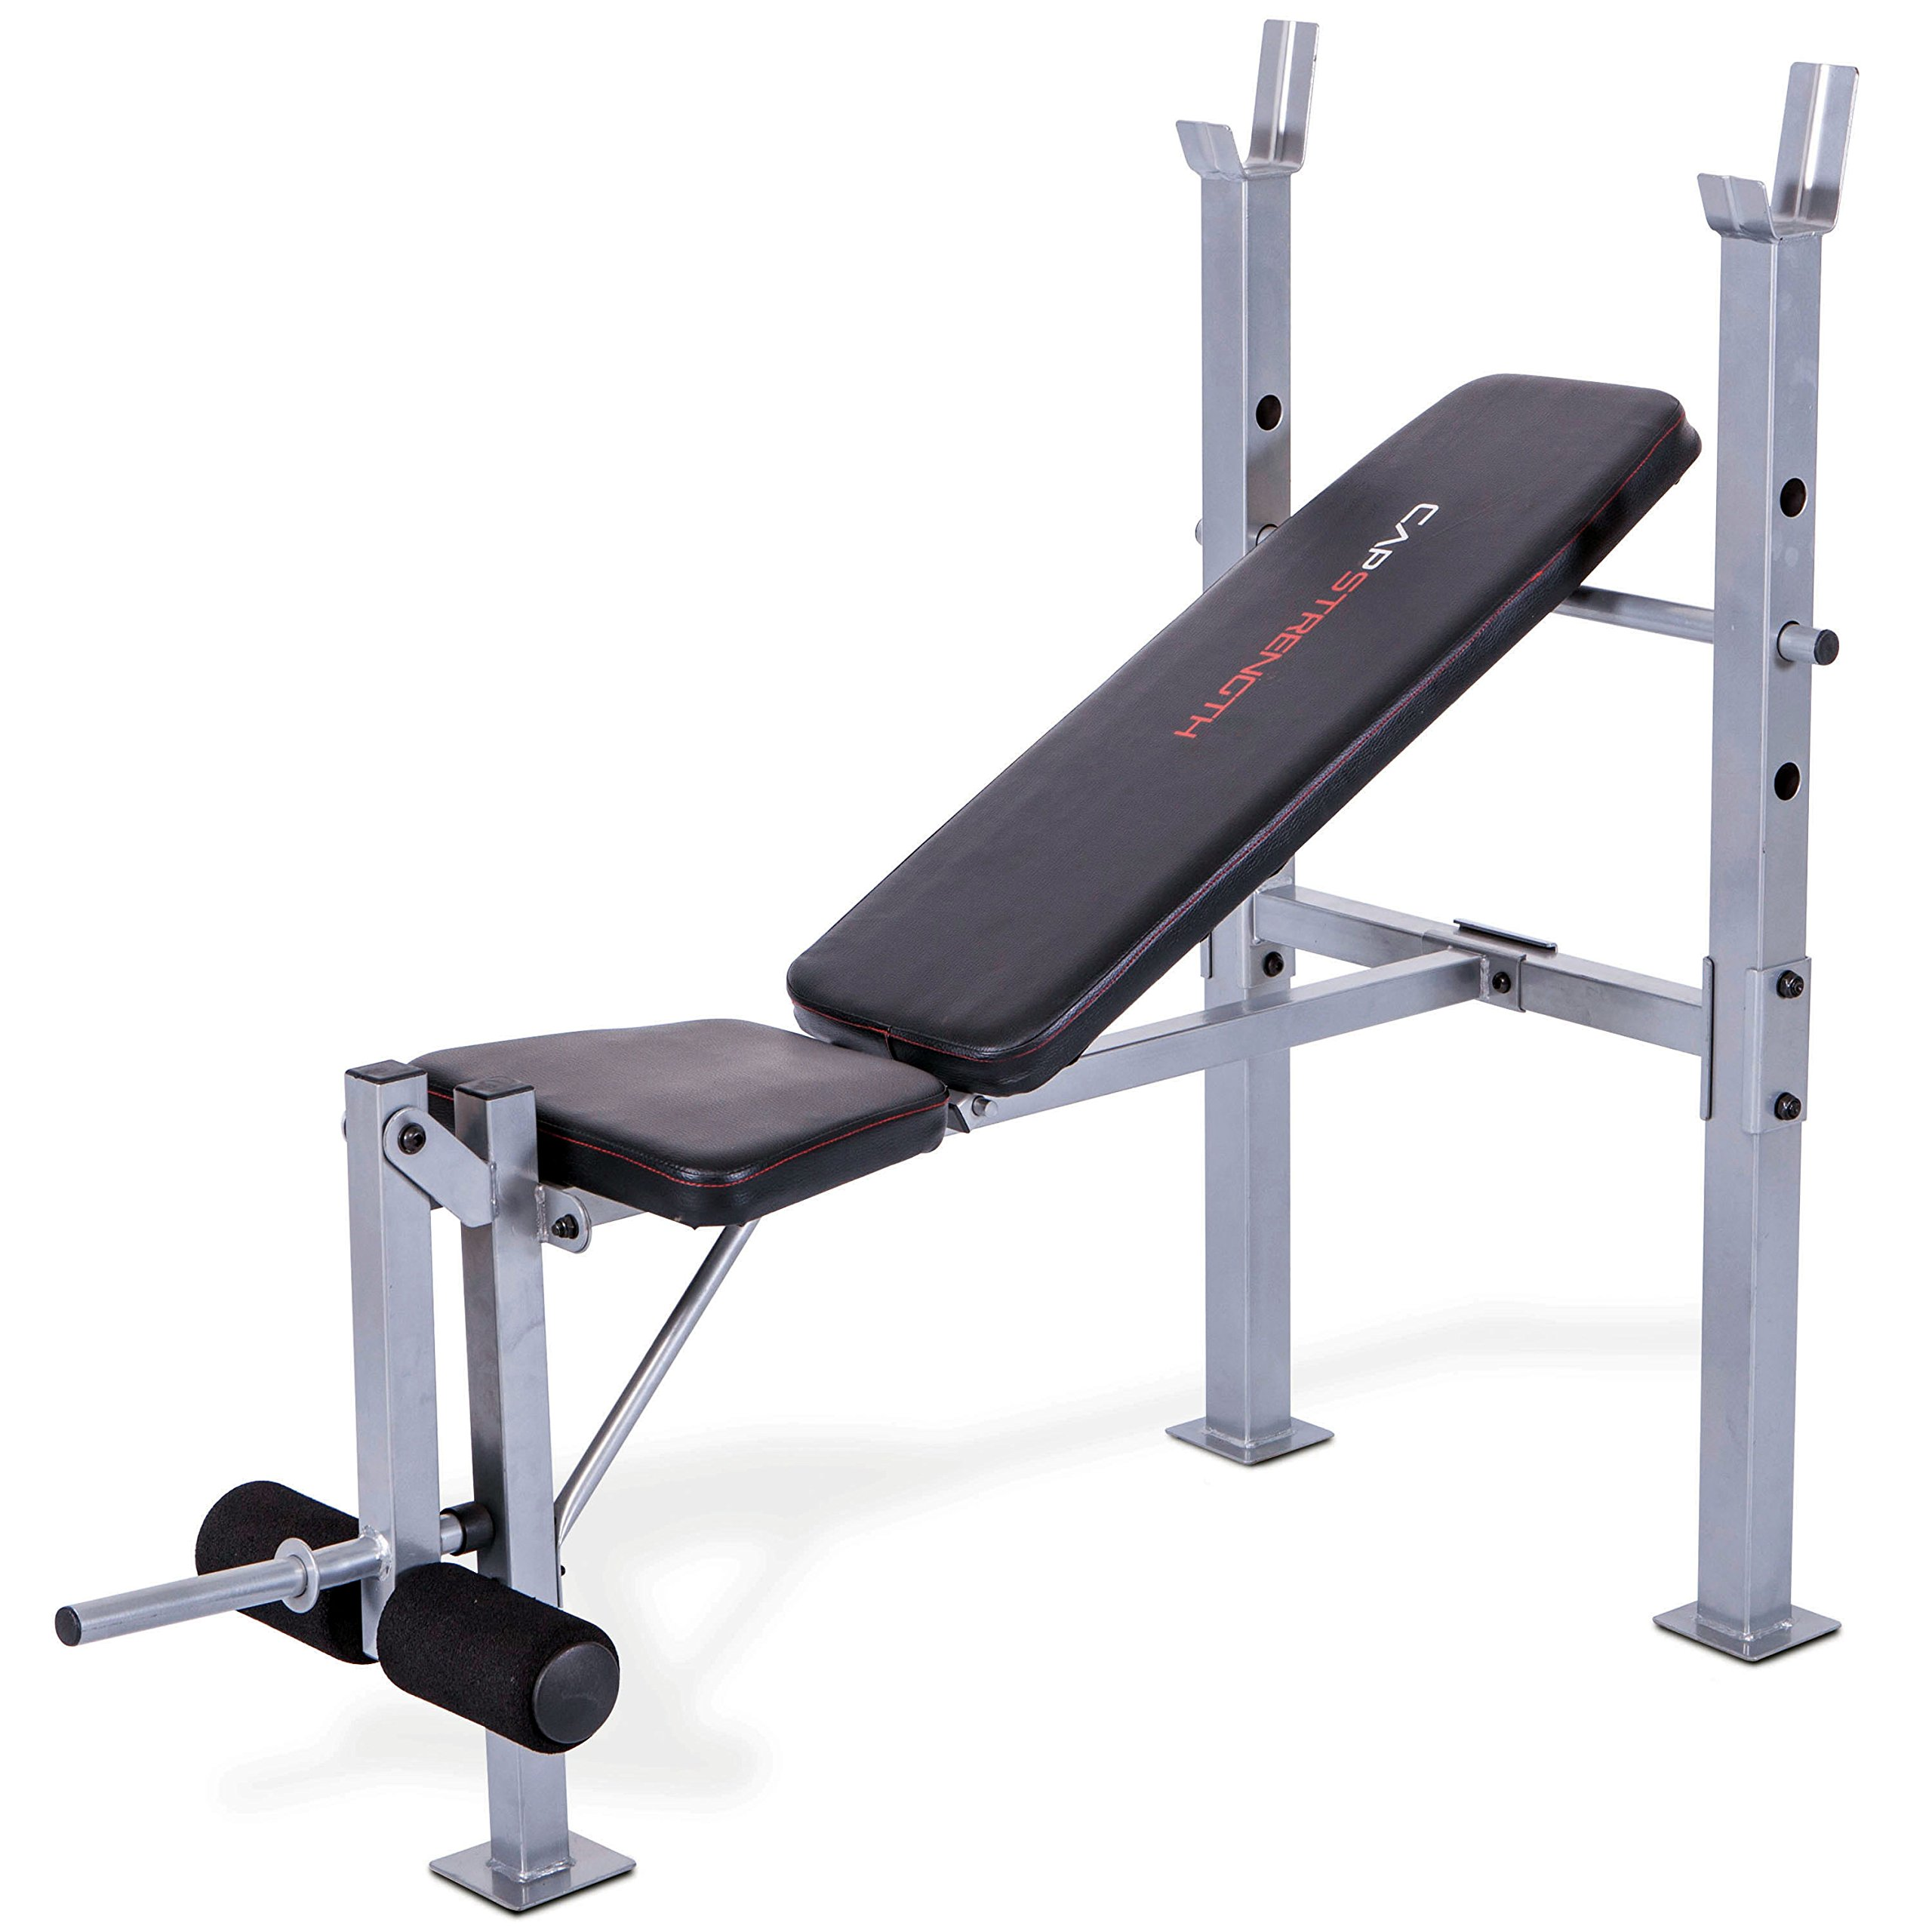 Cap Strength Standard Weight Bench with Leg Developer by CAP Barbell